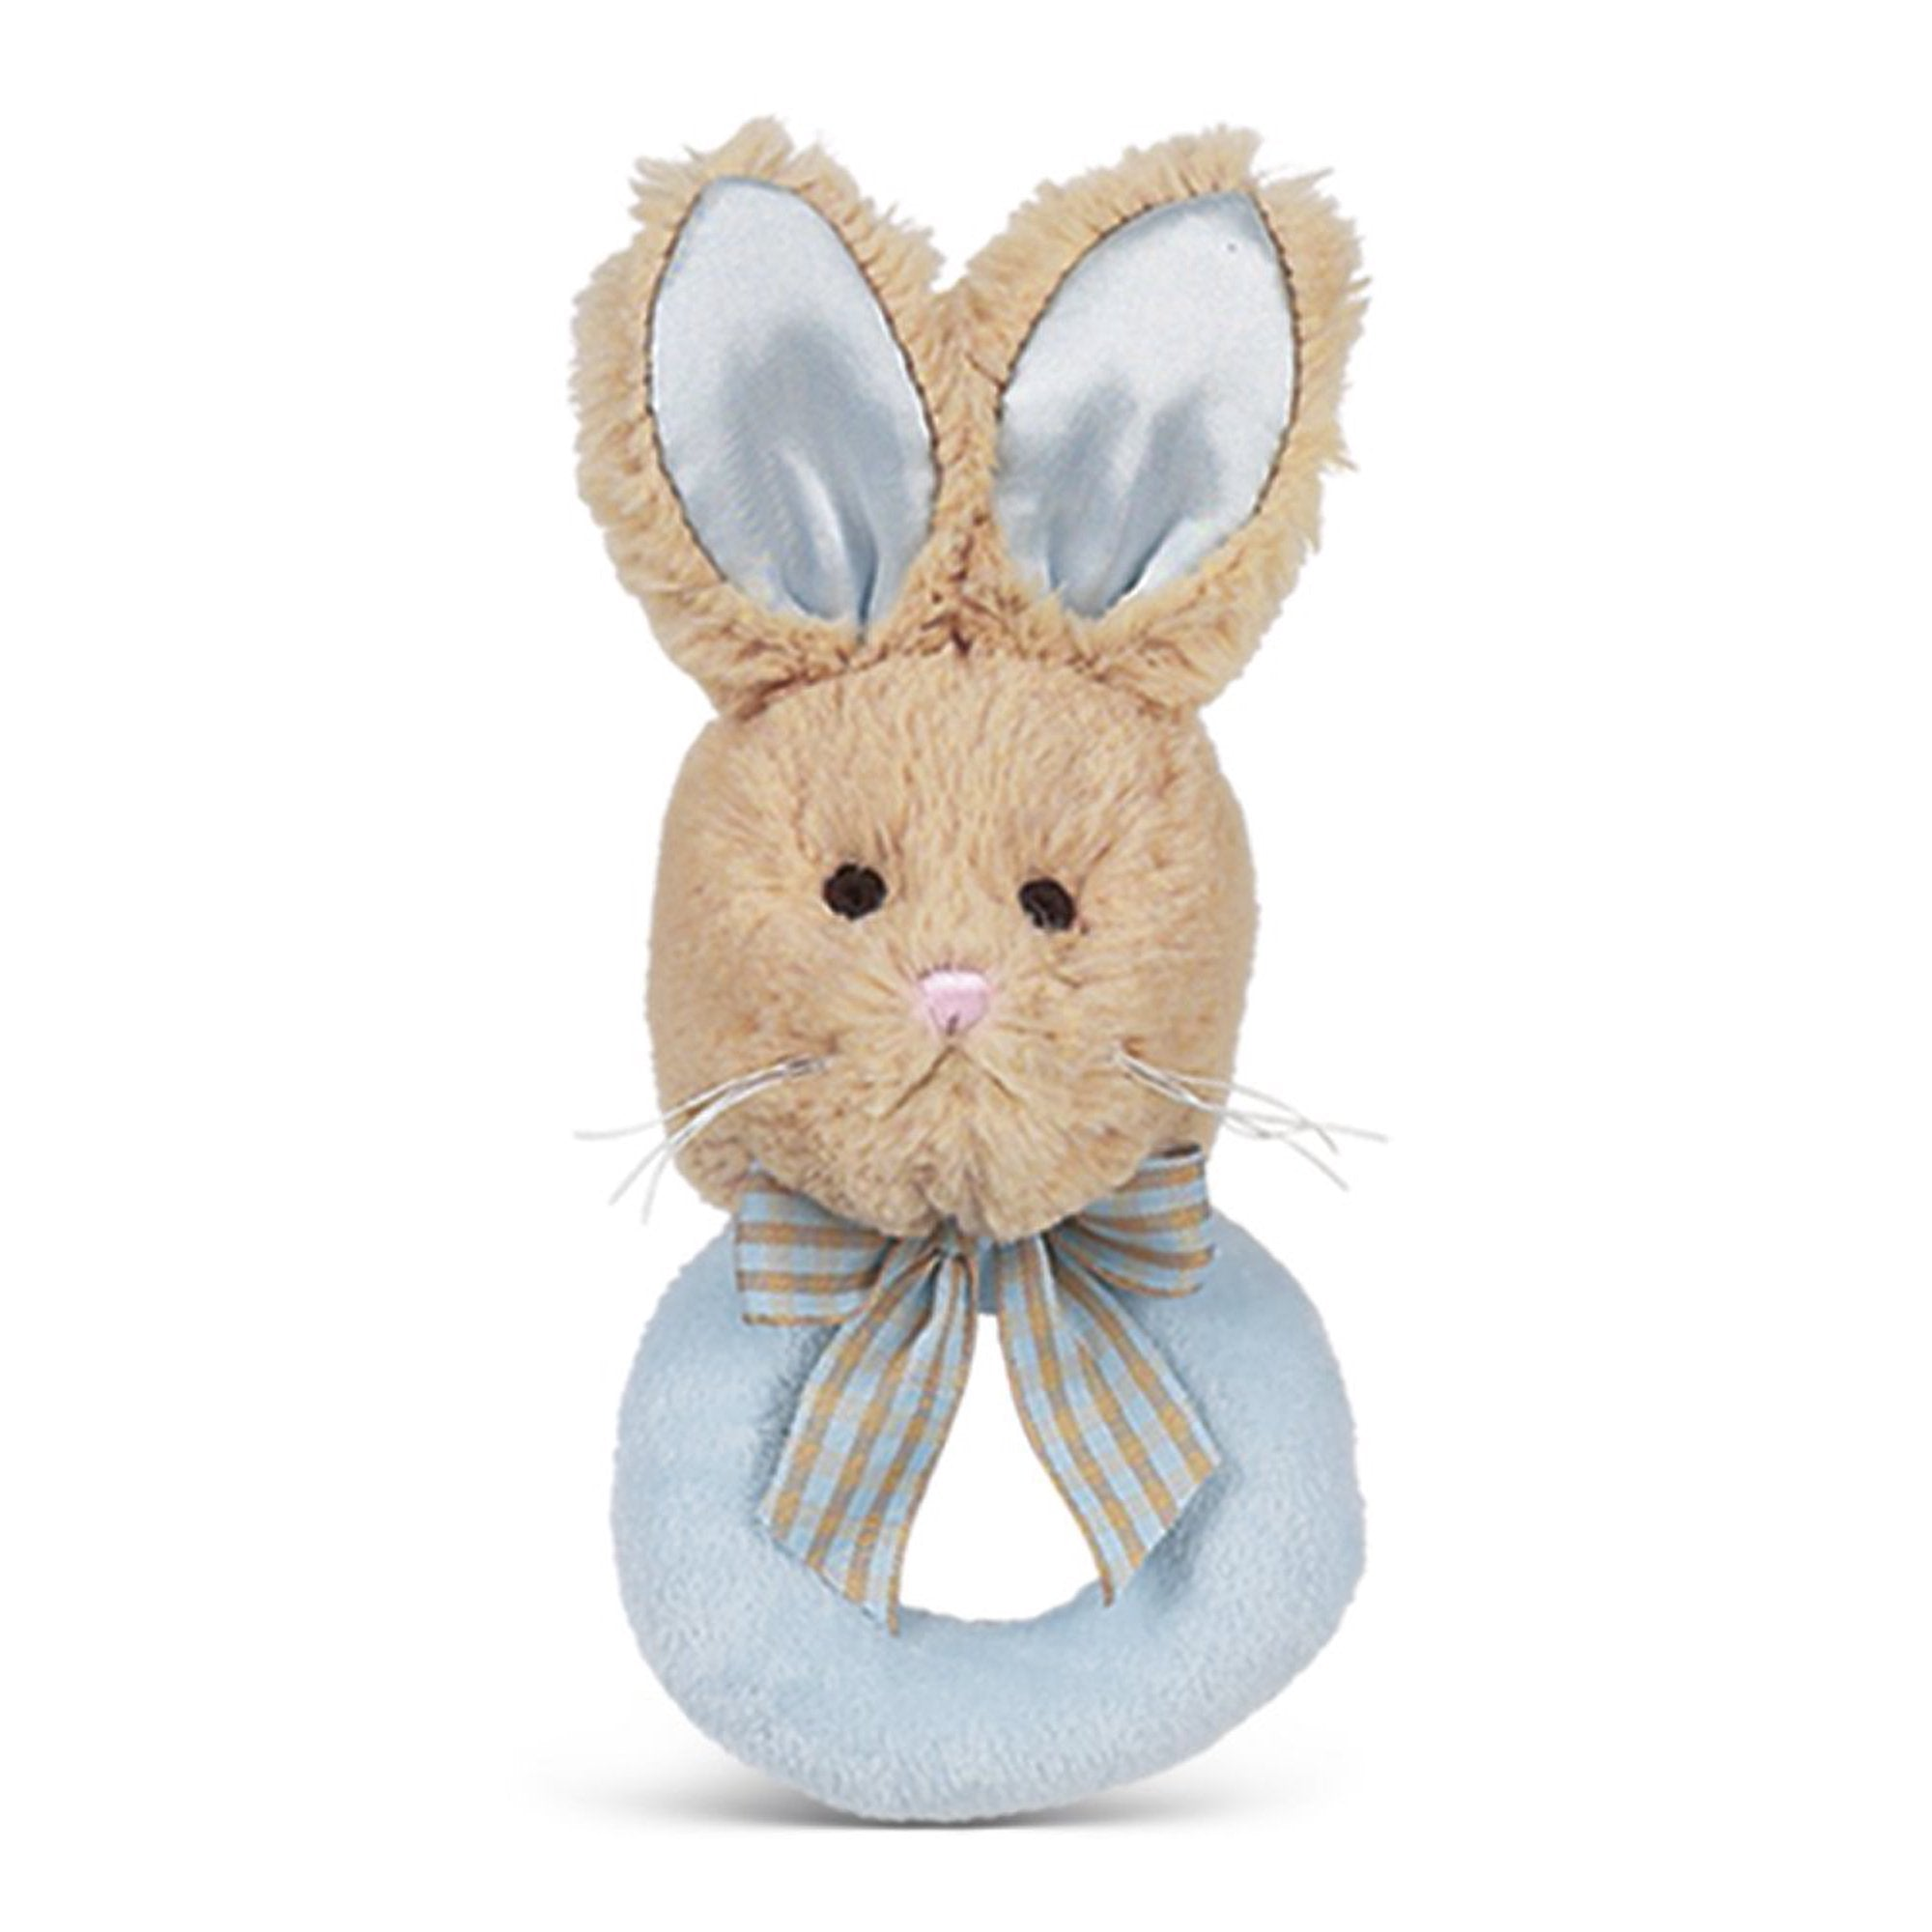 Bearington Baby - Lil' Bunny Tail Blue Plush Stuffed Animal Soft Ring Rattle, 5.5""